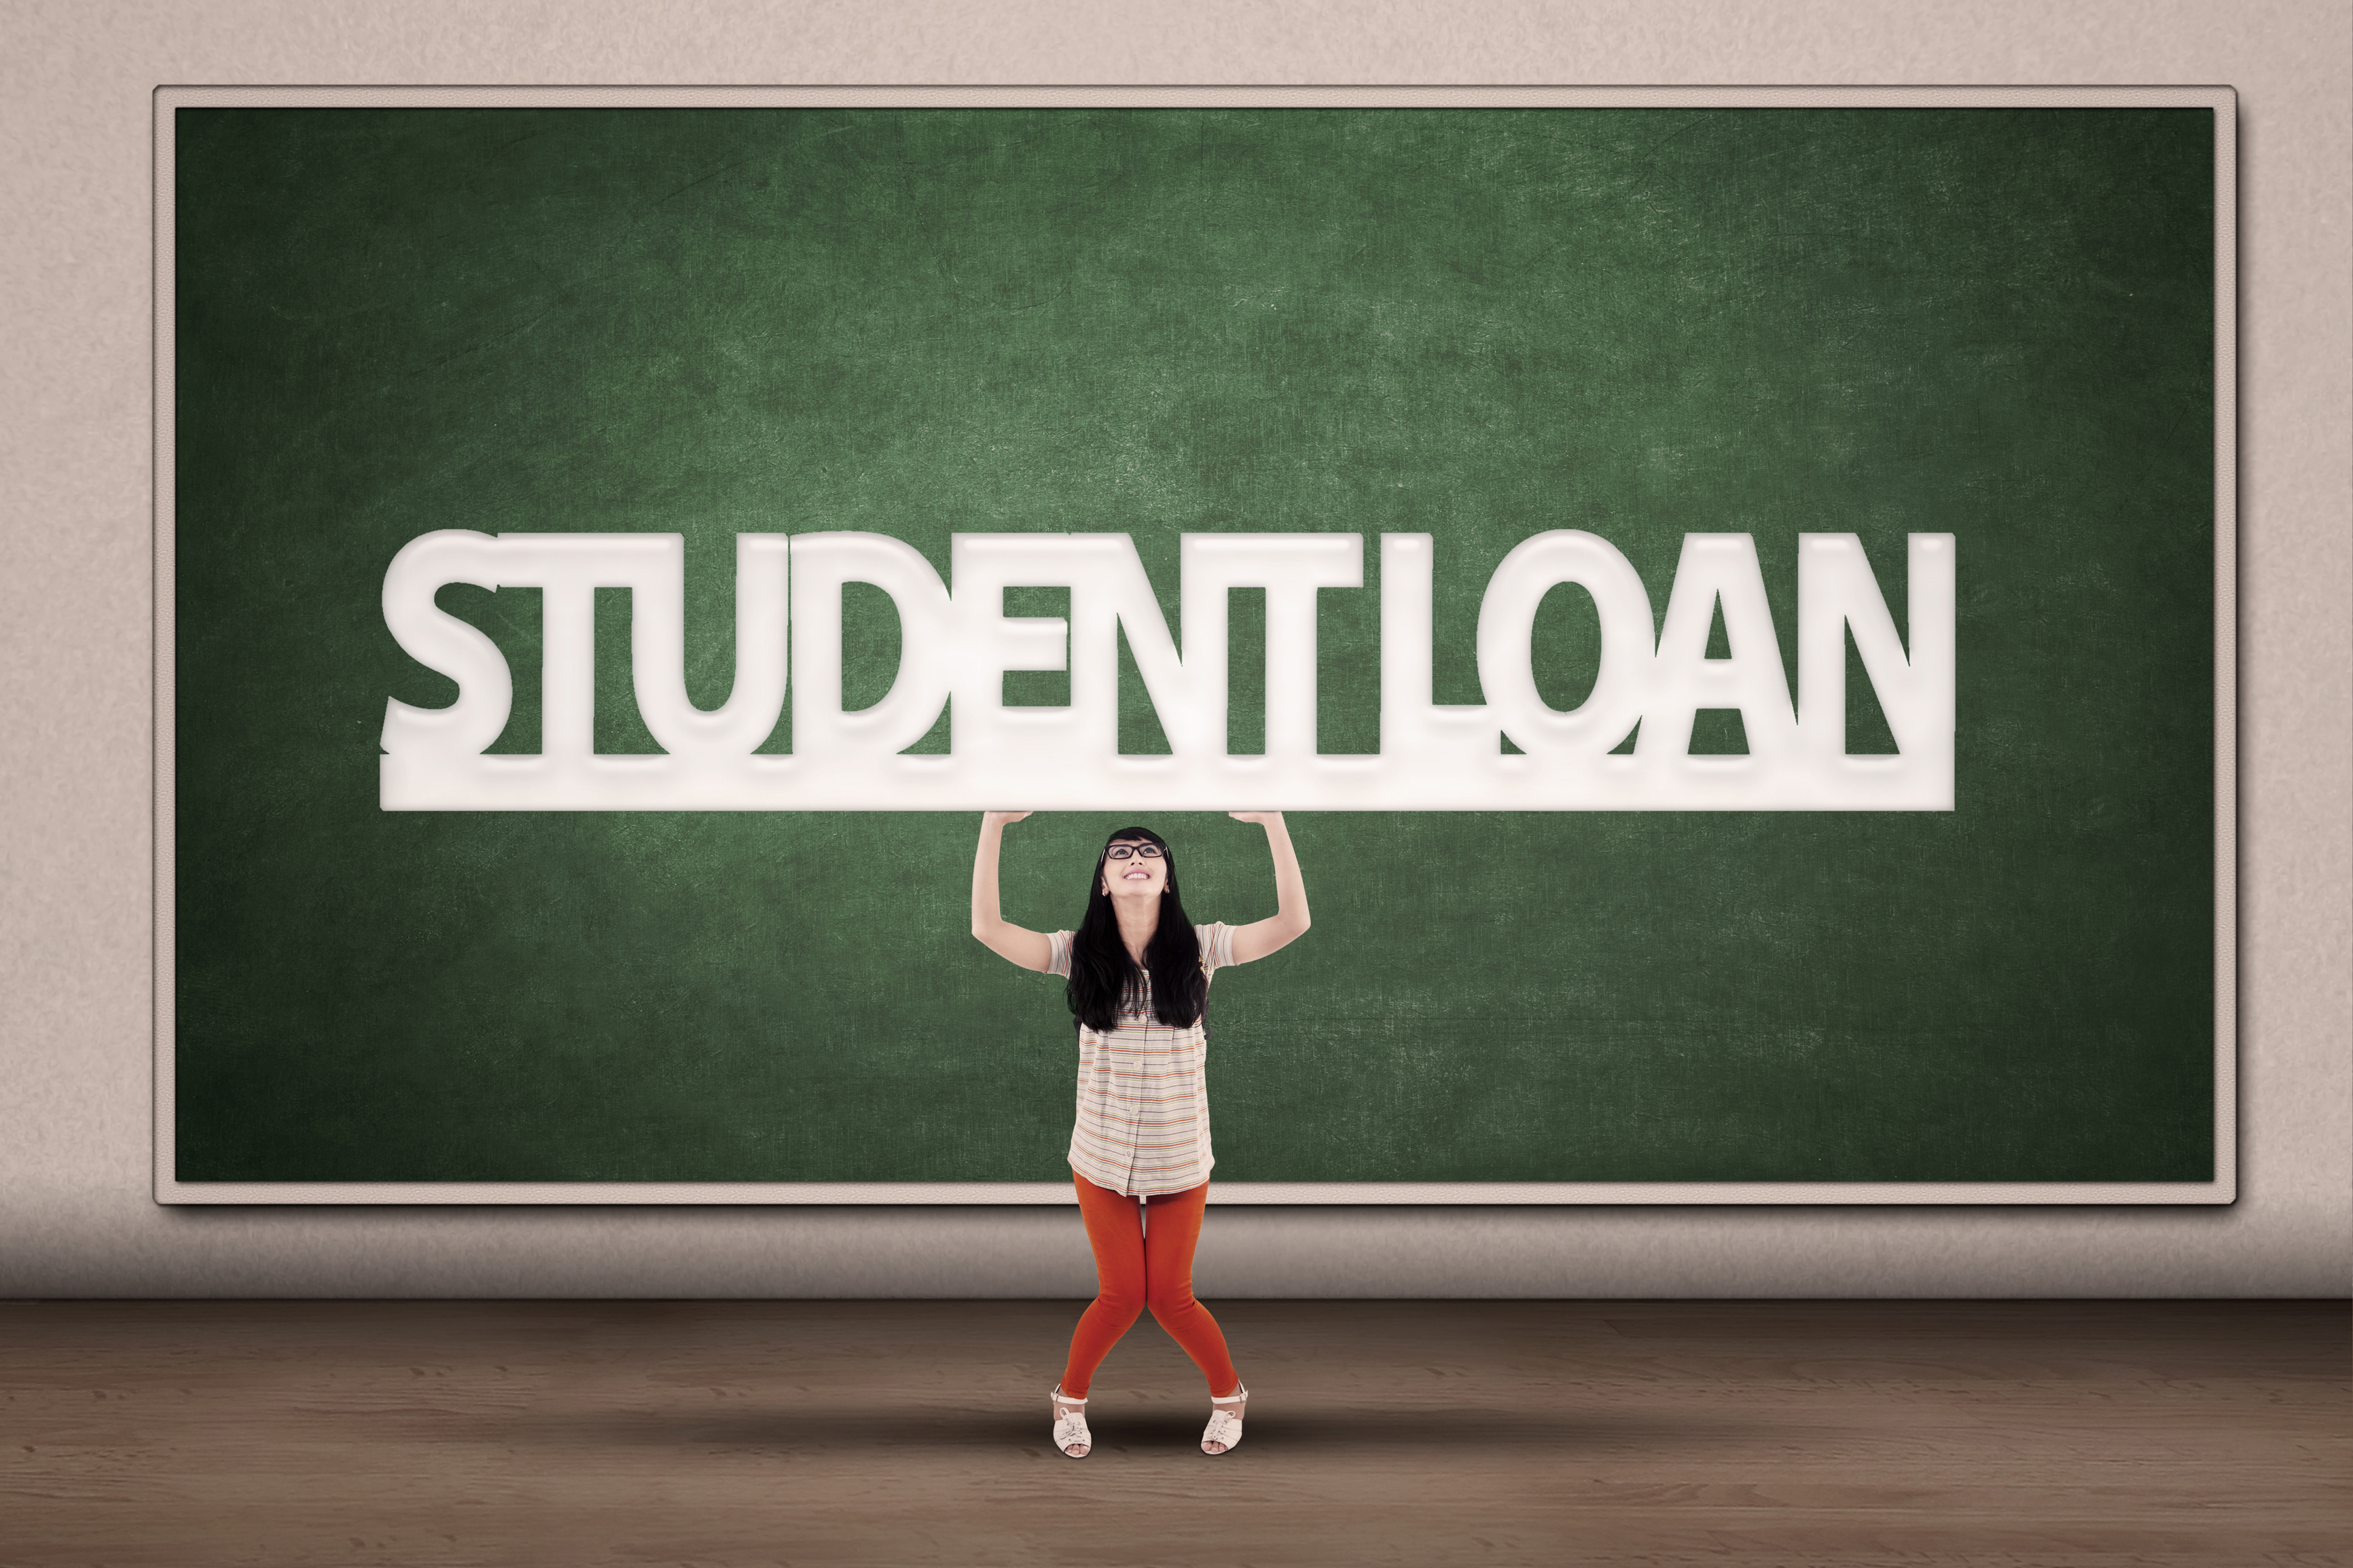 High Student Loan Debt is Effecting Society and the Economy